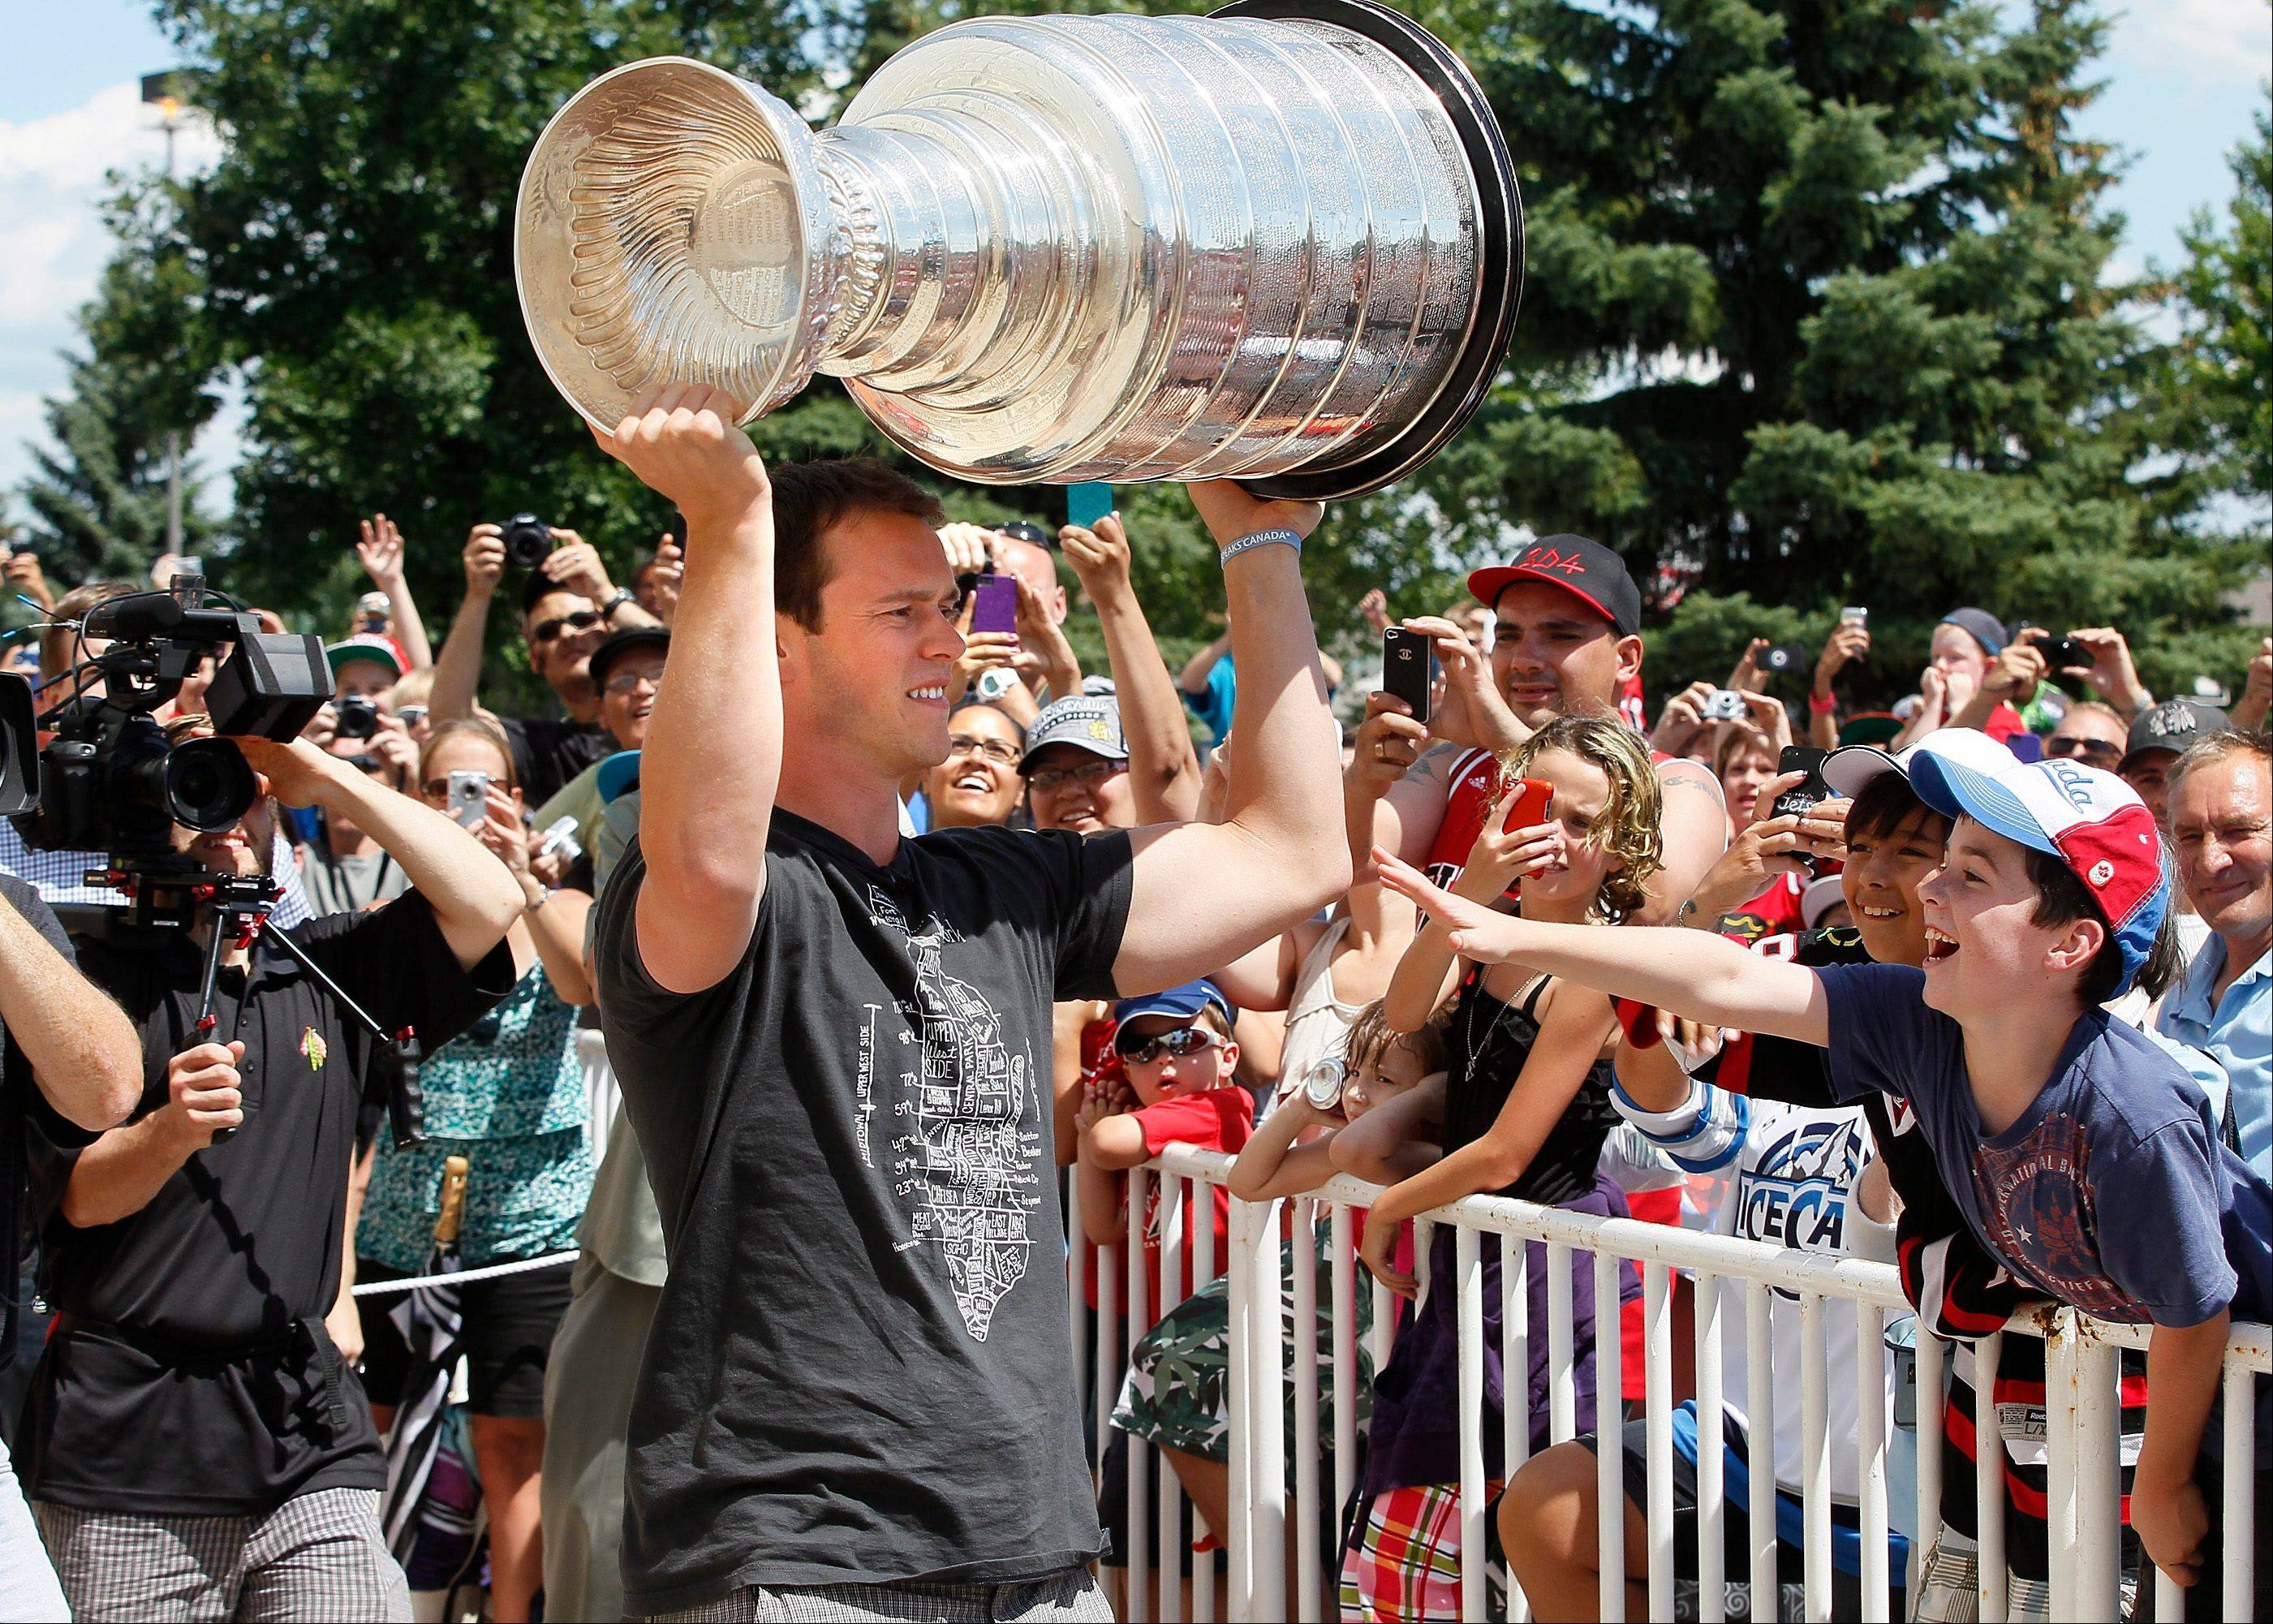 Chicago Blackhawks captain Jonathan Toews brought the Stanley Cup last July 19th to the Jonathan Toews Community Centre in Winnipeg, Manitoba, his hometown. On Saturday, he's bringing the rest of the Blackhawks to play the Jets, the team he cheered as a young boy.